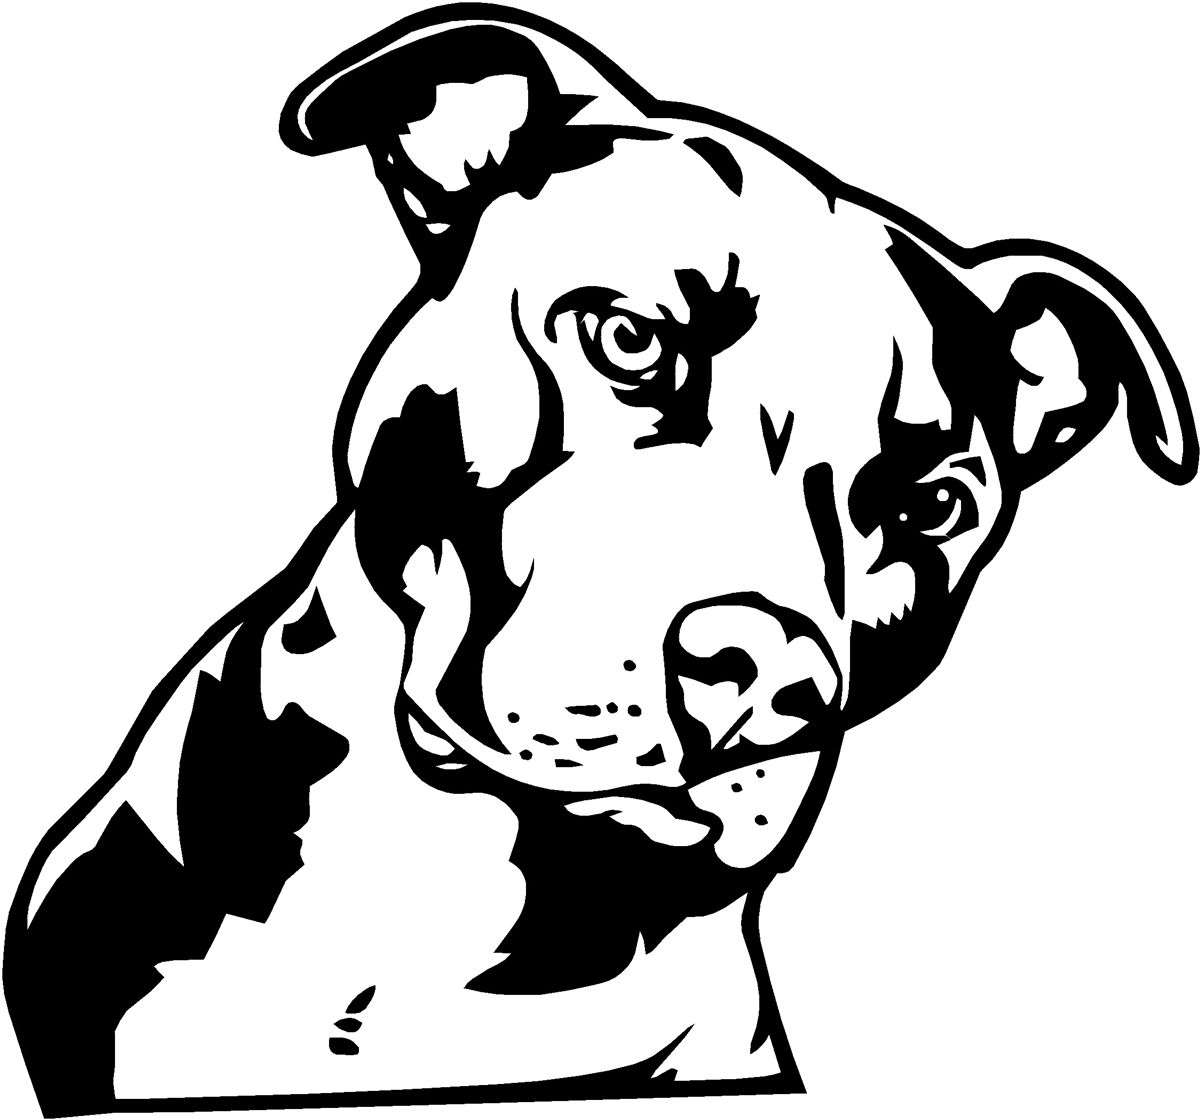 Pit bull dog clipart.